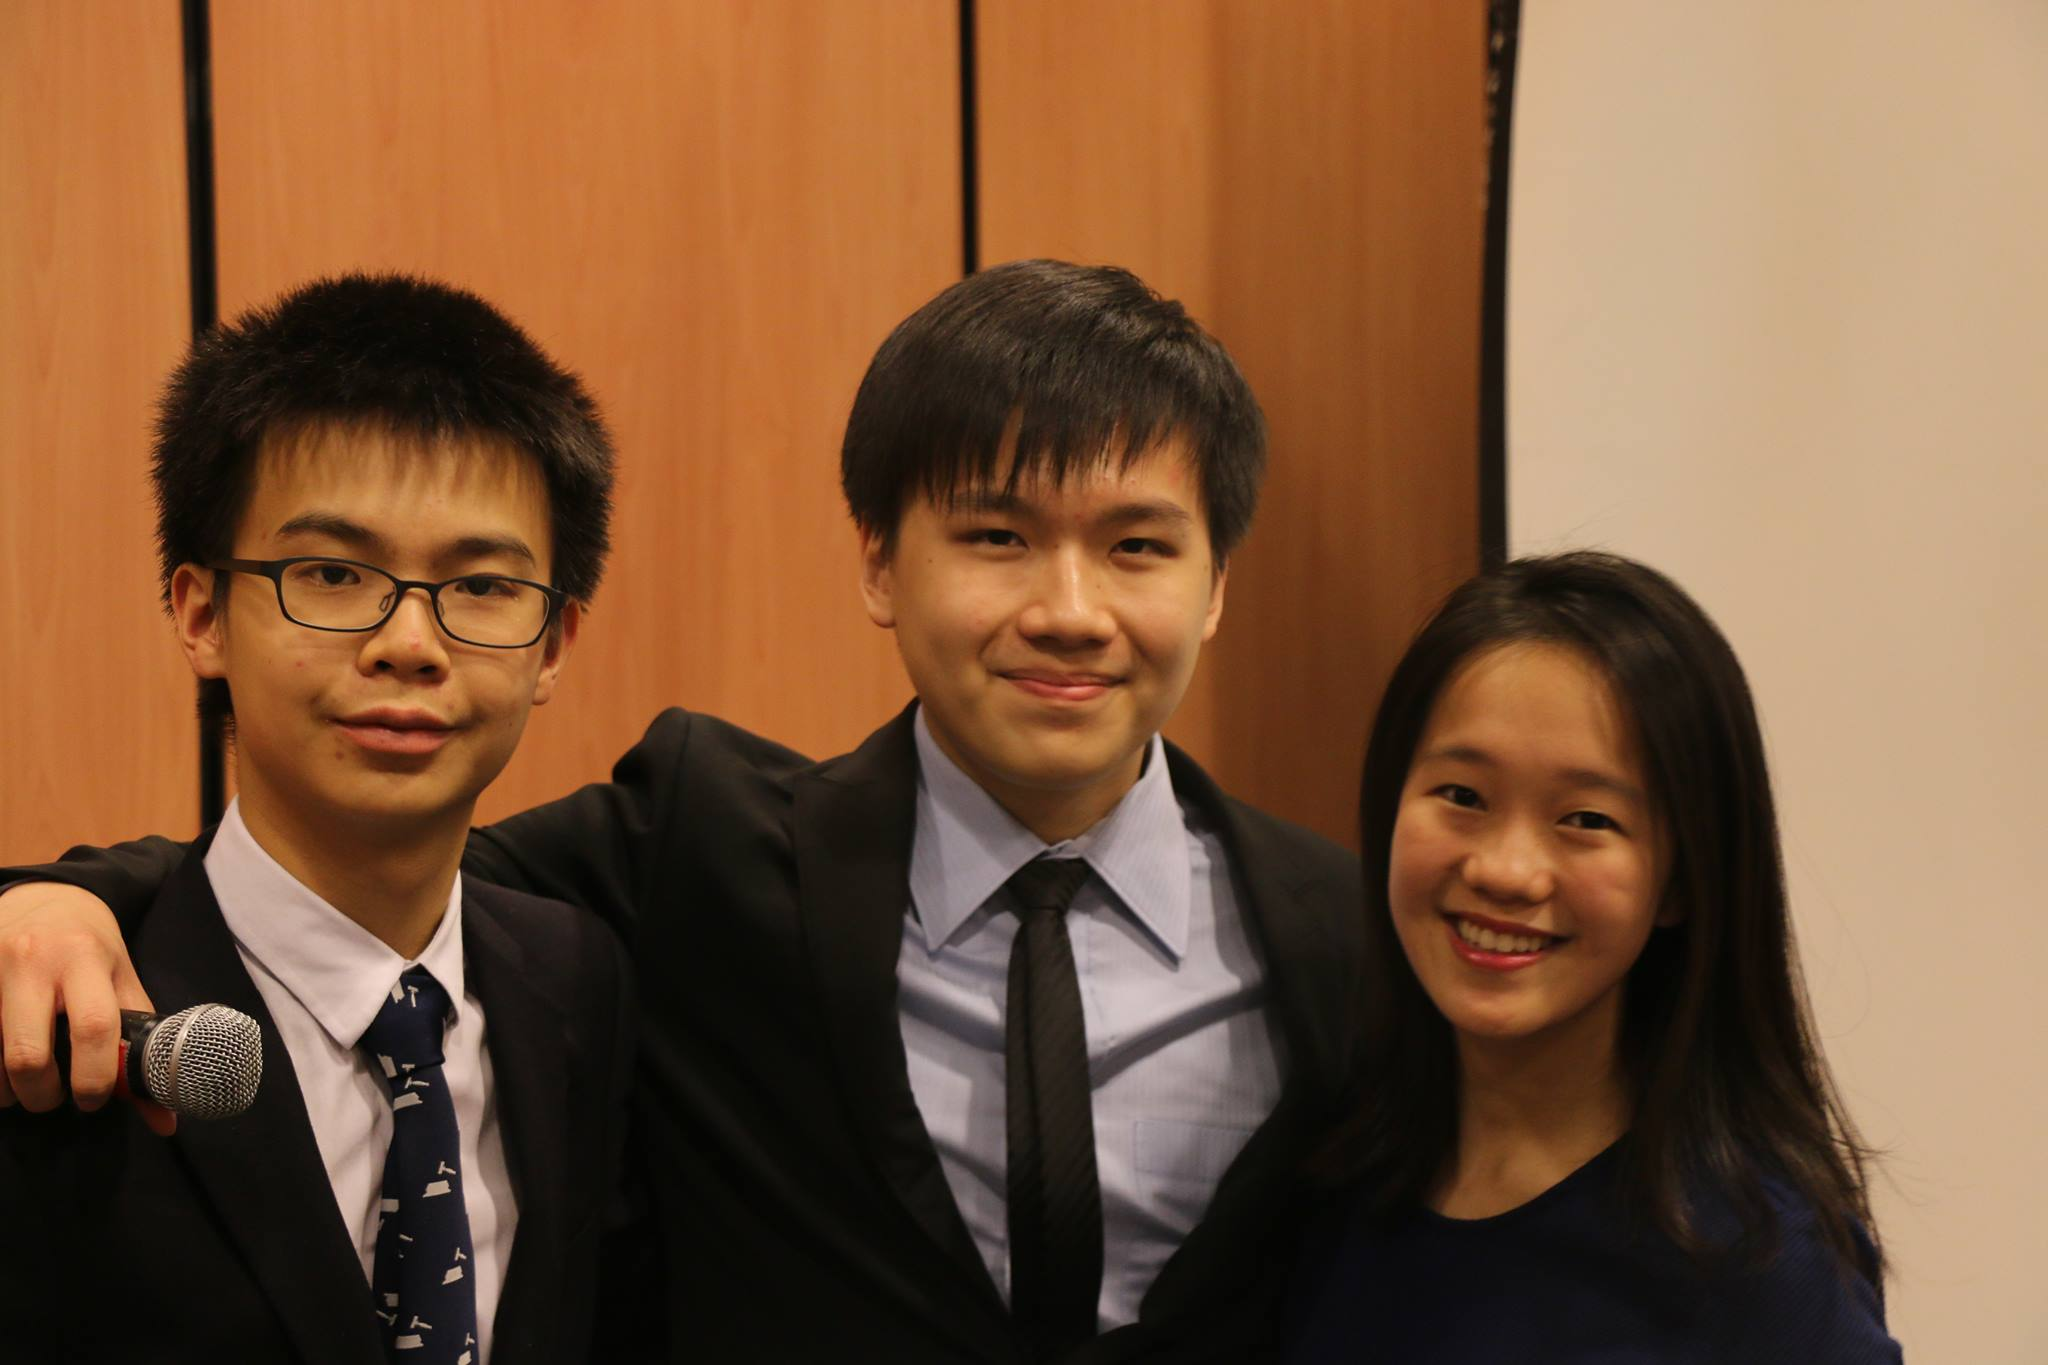 The three teenagers who wanted to share their love for MUN with all students in Hong Kong.